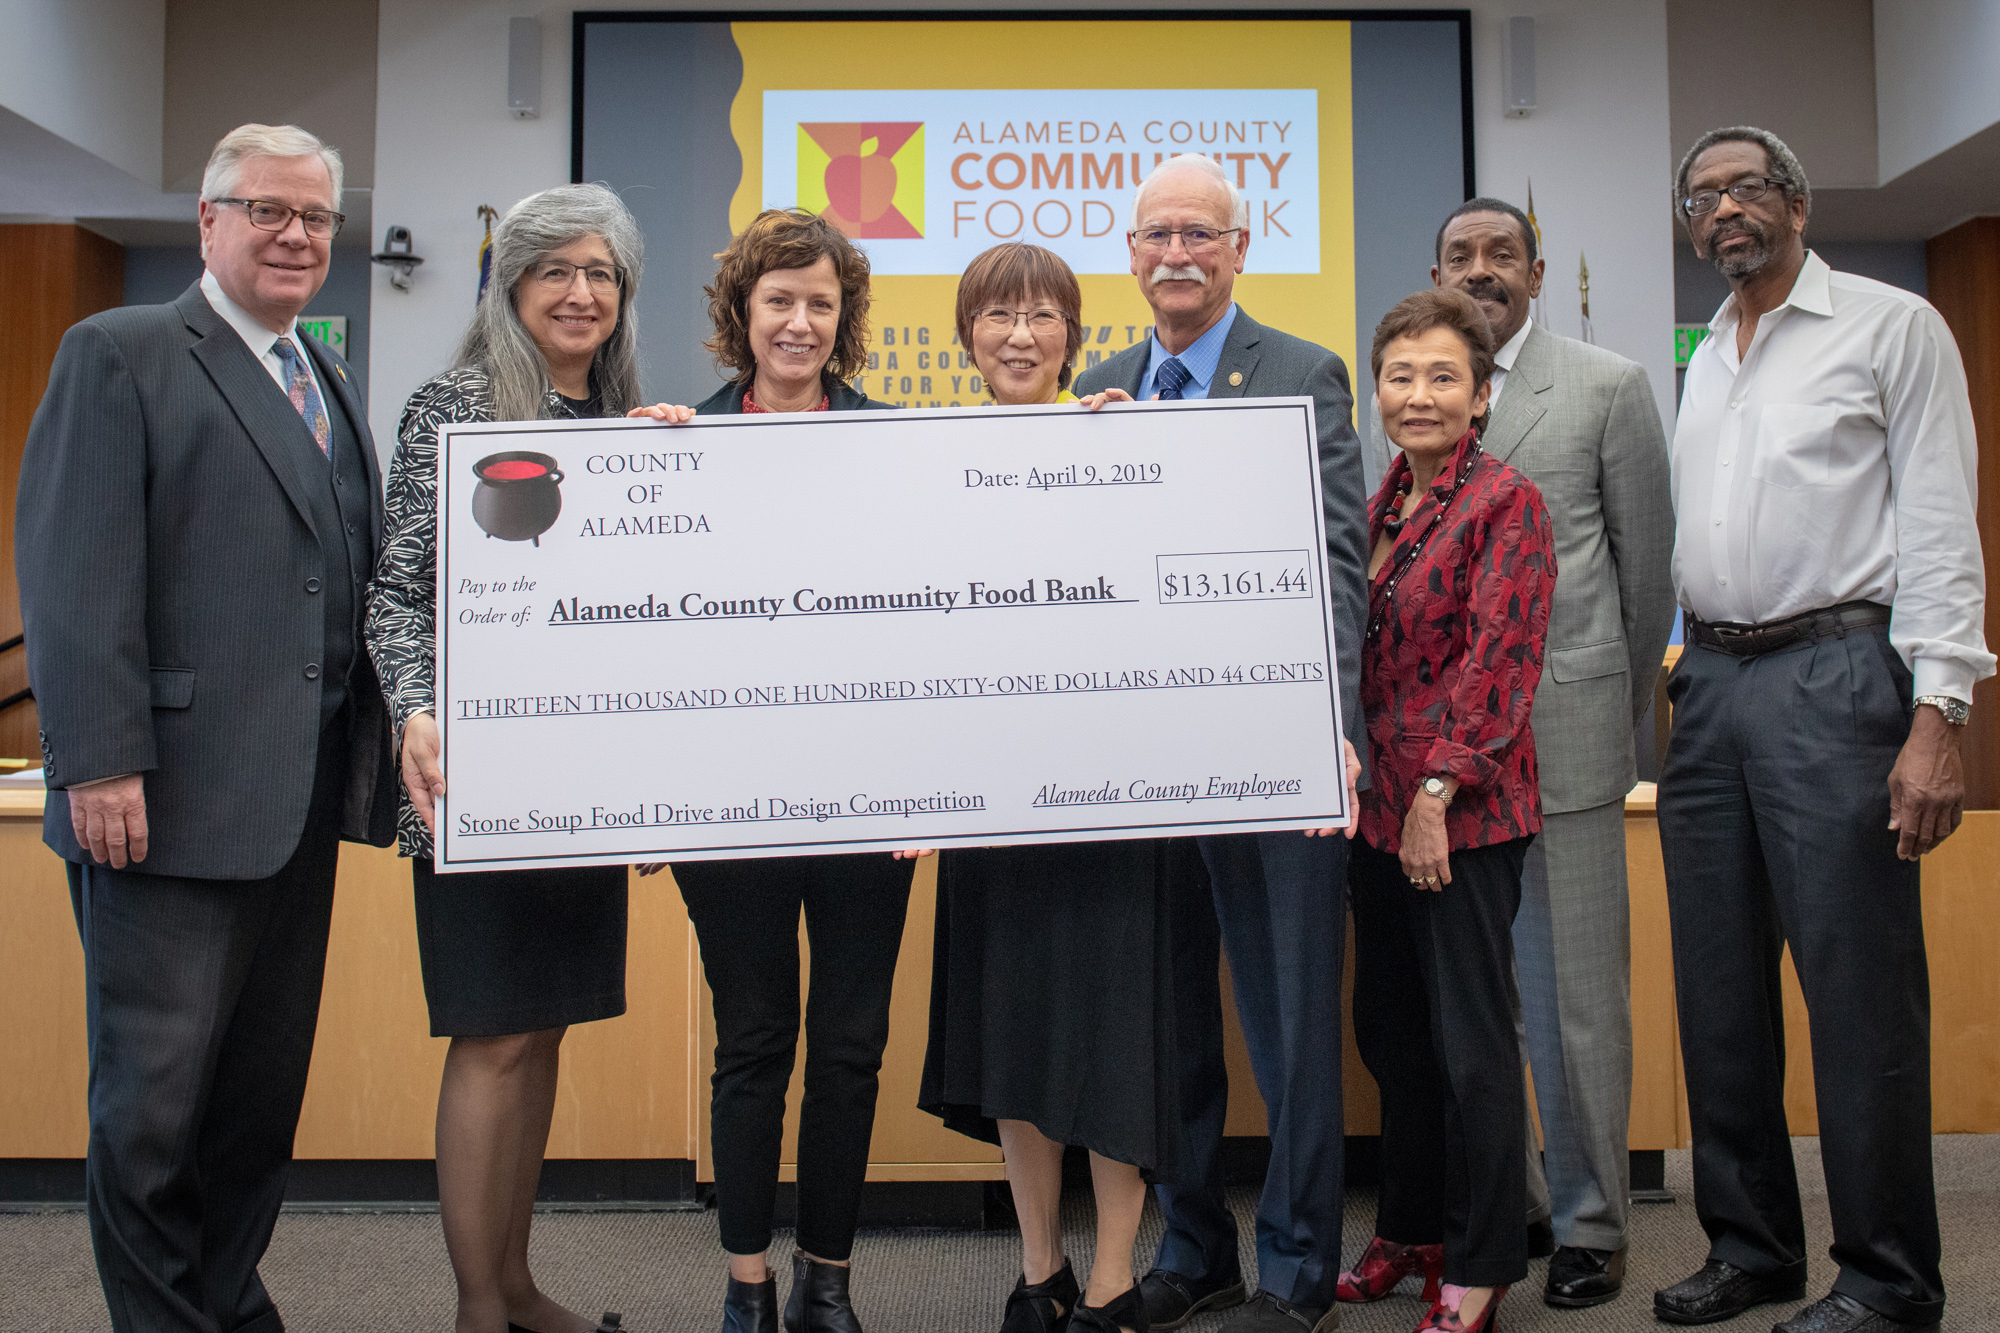 Our Board of Supervisors and County Administrator presented Alameda County Community Food Bank with a $13,161 check to culminate the Stone Soup Food Drive.